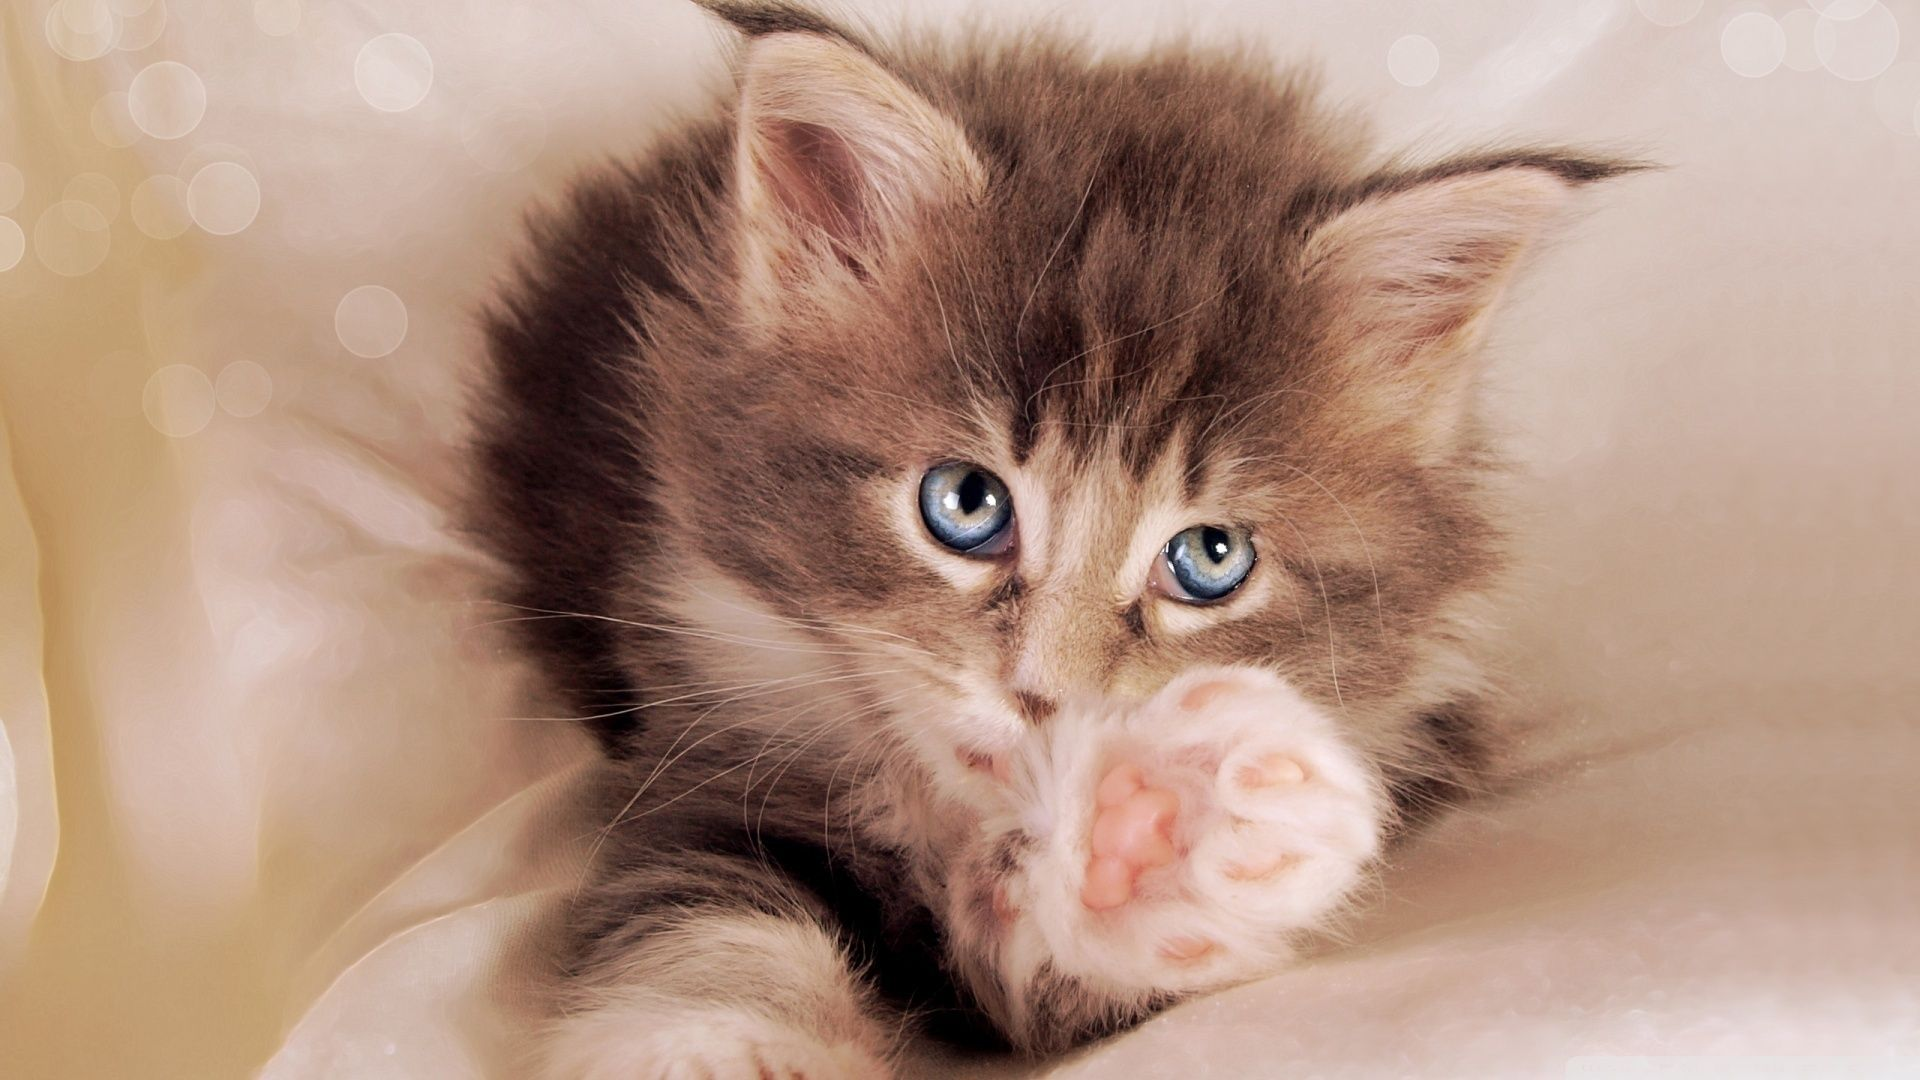 Beautiful Pictures Of Cute Kittens